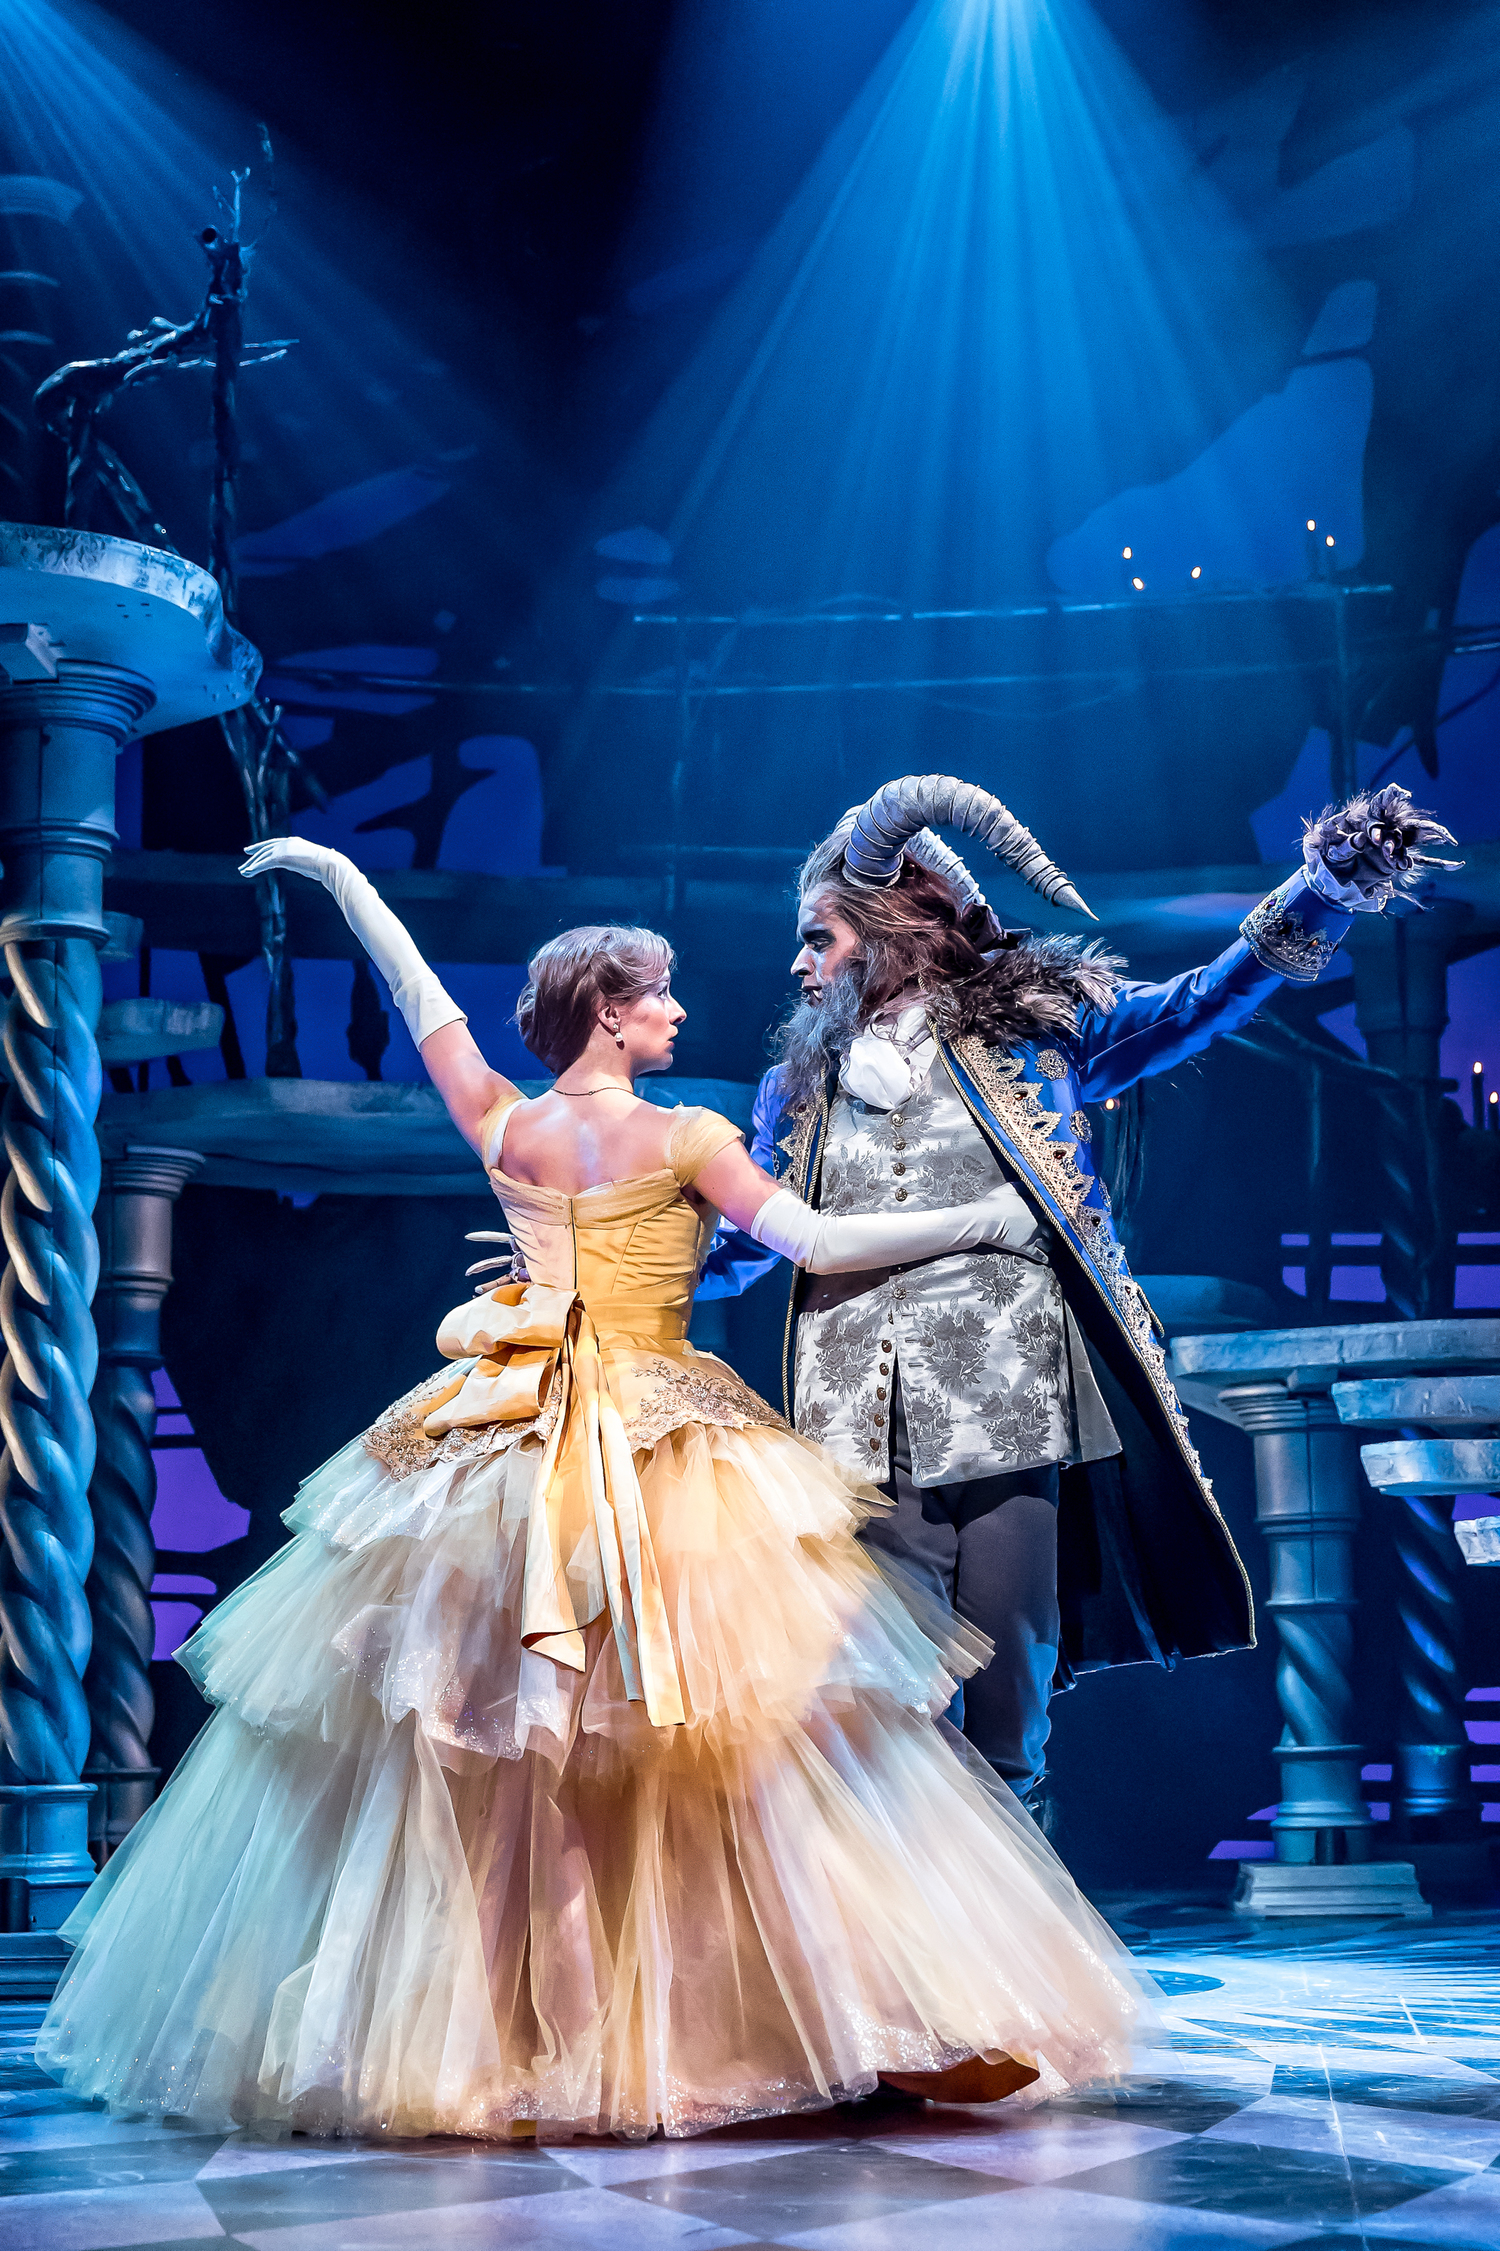 BWW Review: BEAUTY AND THE BEAST at Drury Lane Theatre